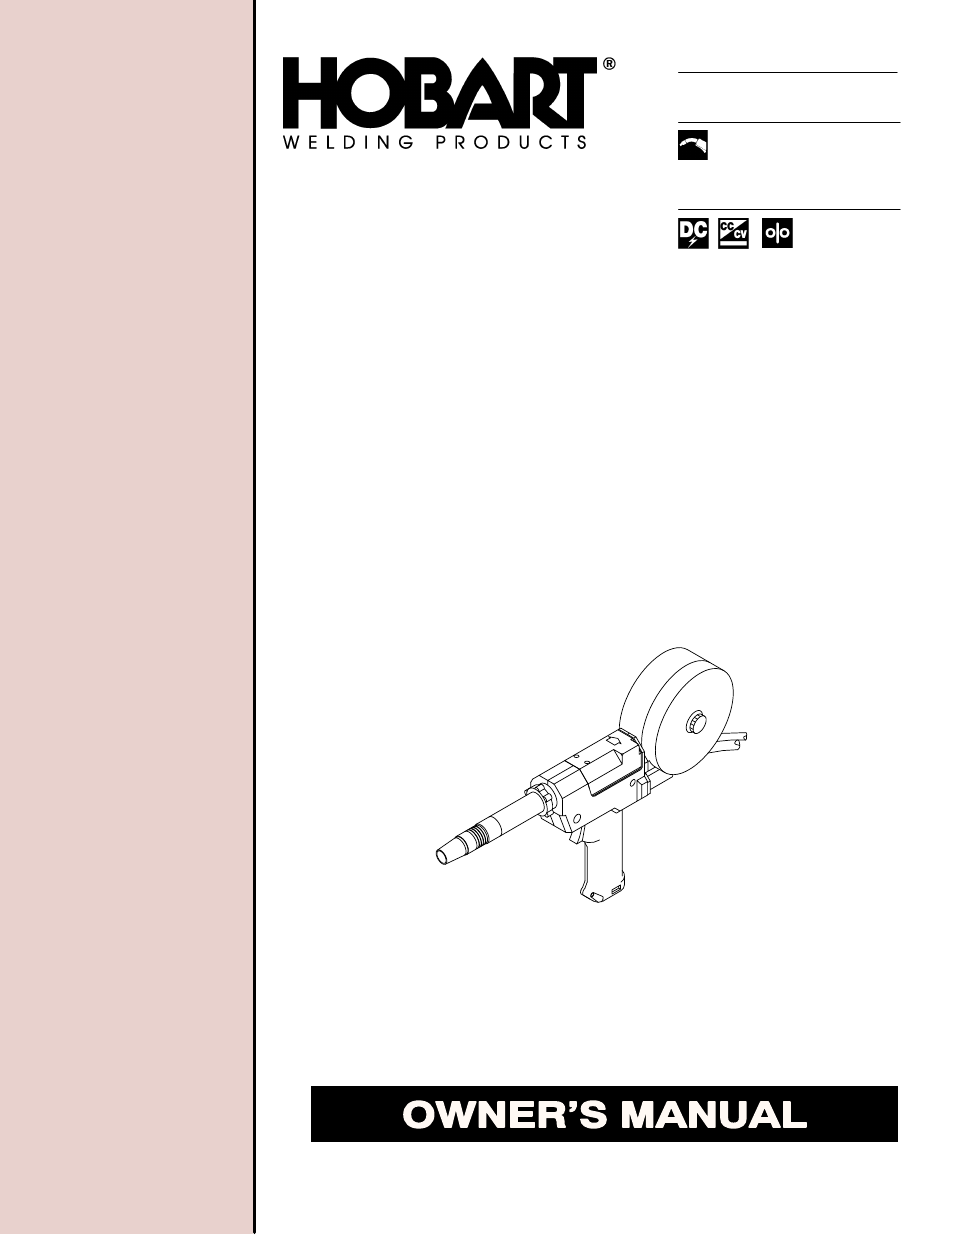 Hobart Welding Products OLYMPIC 30A OM-184 693C User Manual | 24 pages